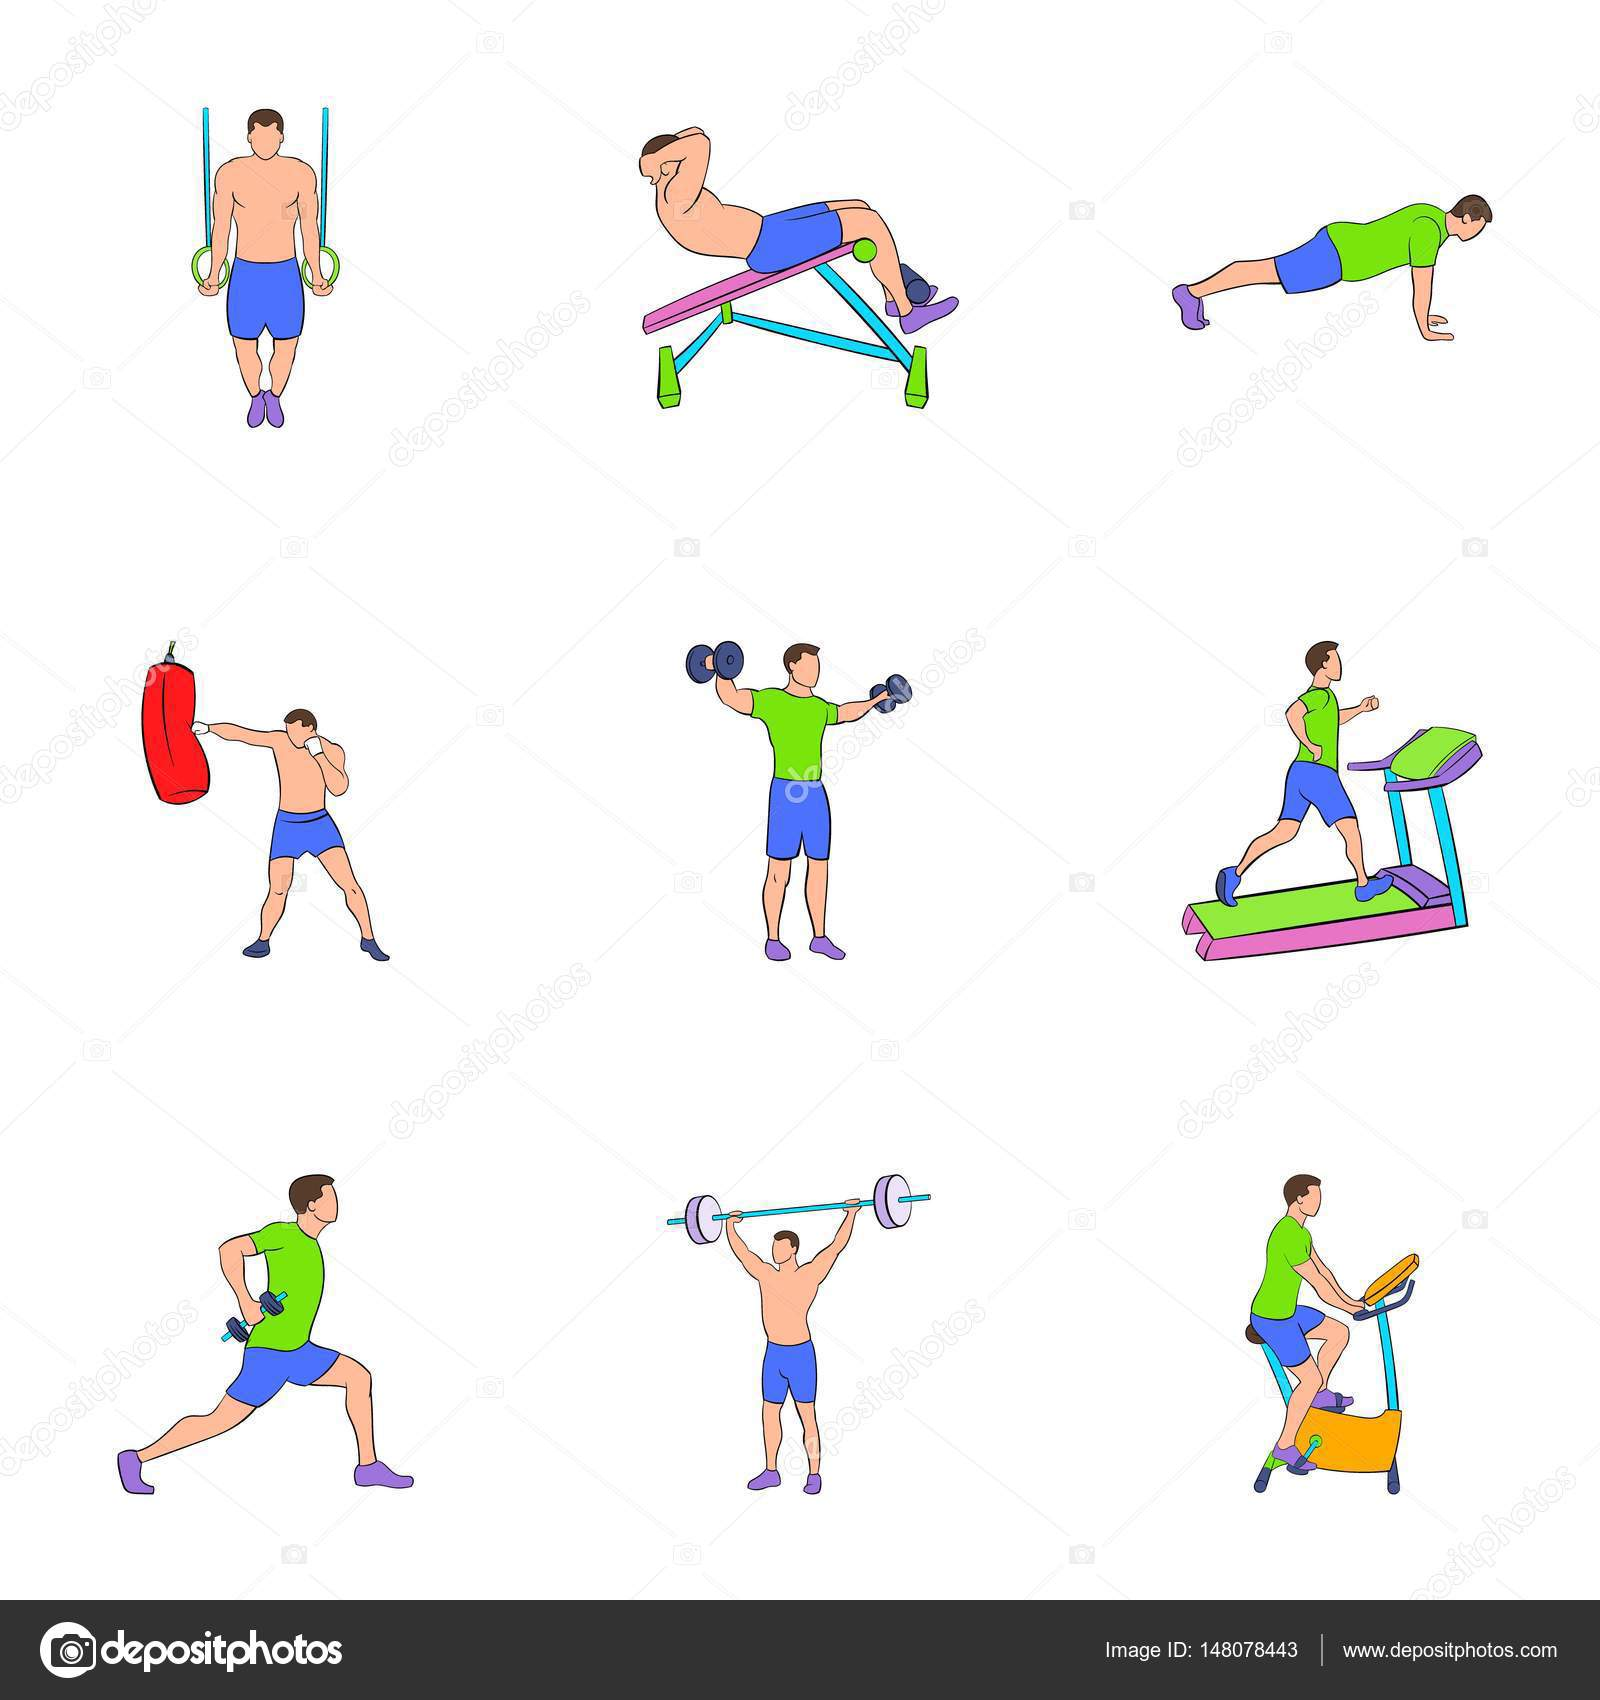 depositphotos_148078443-stock-illustration-physical-exercises-icons-set-cartoon.jpg